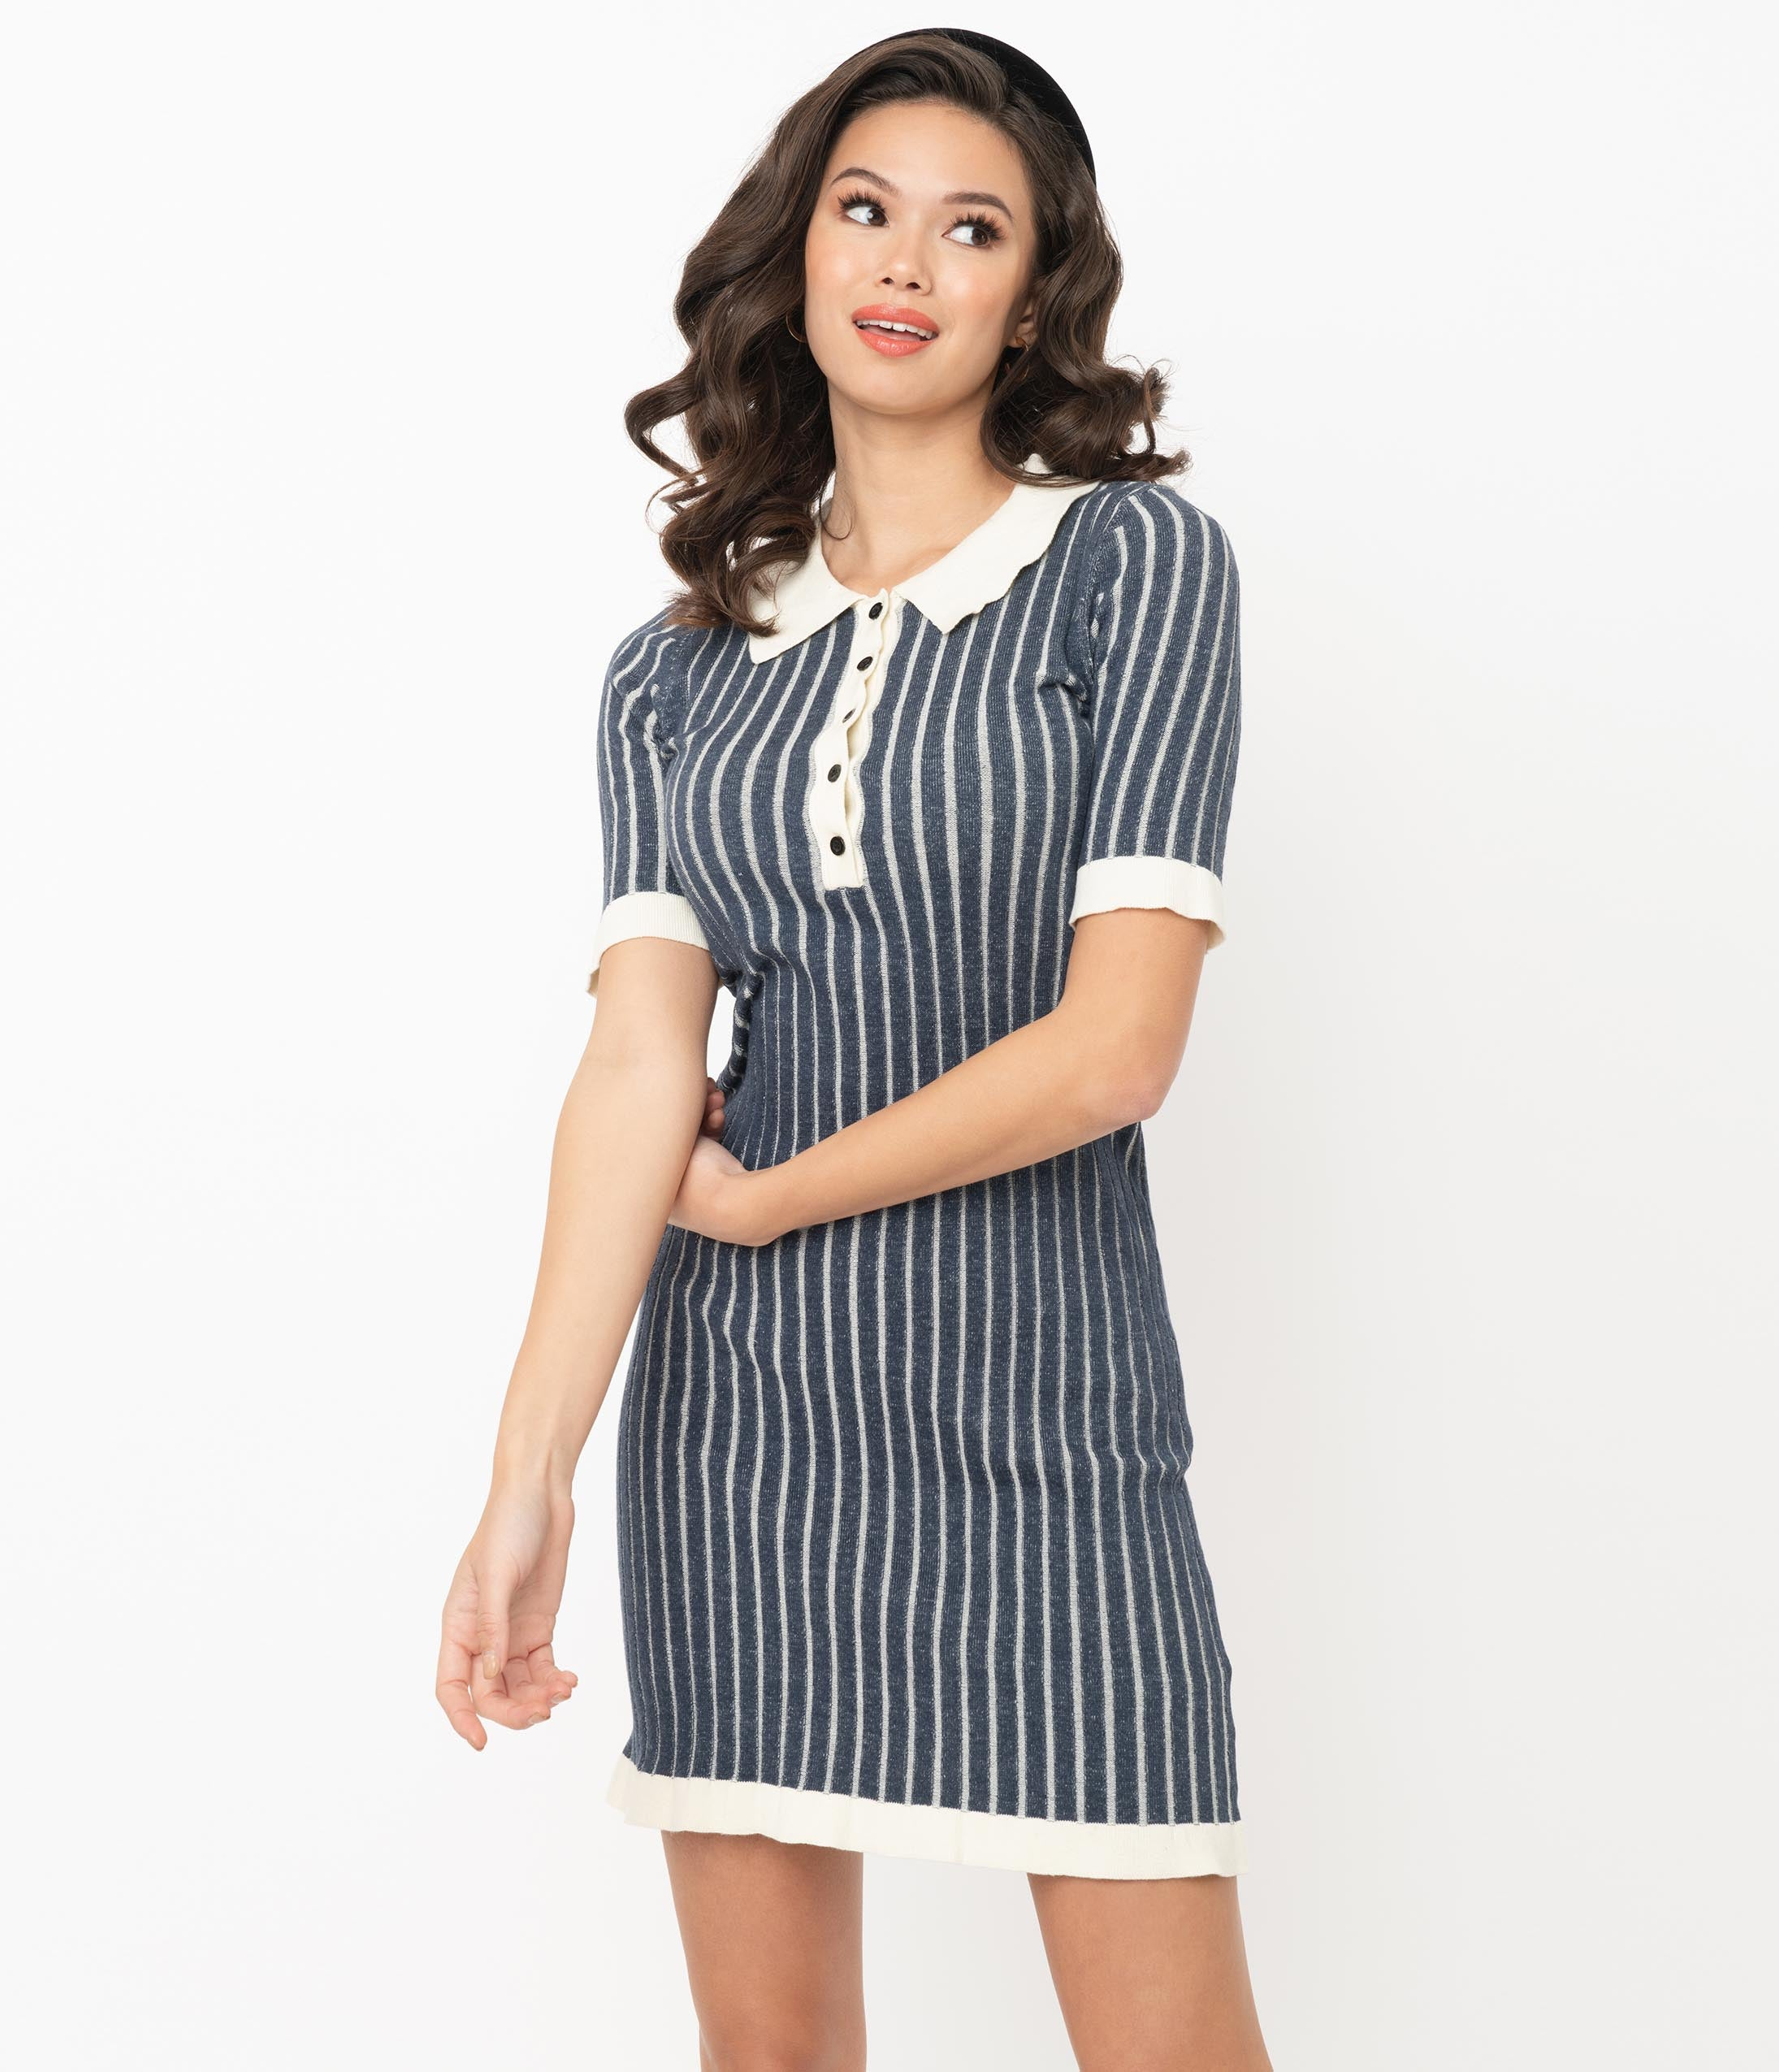 Shop Queen's Gambit Outfits – 60s Clothes Retro Style Navy  Off White Stripe Sweater Pencil Dress $62.00 AT vintagedancer.com